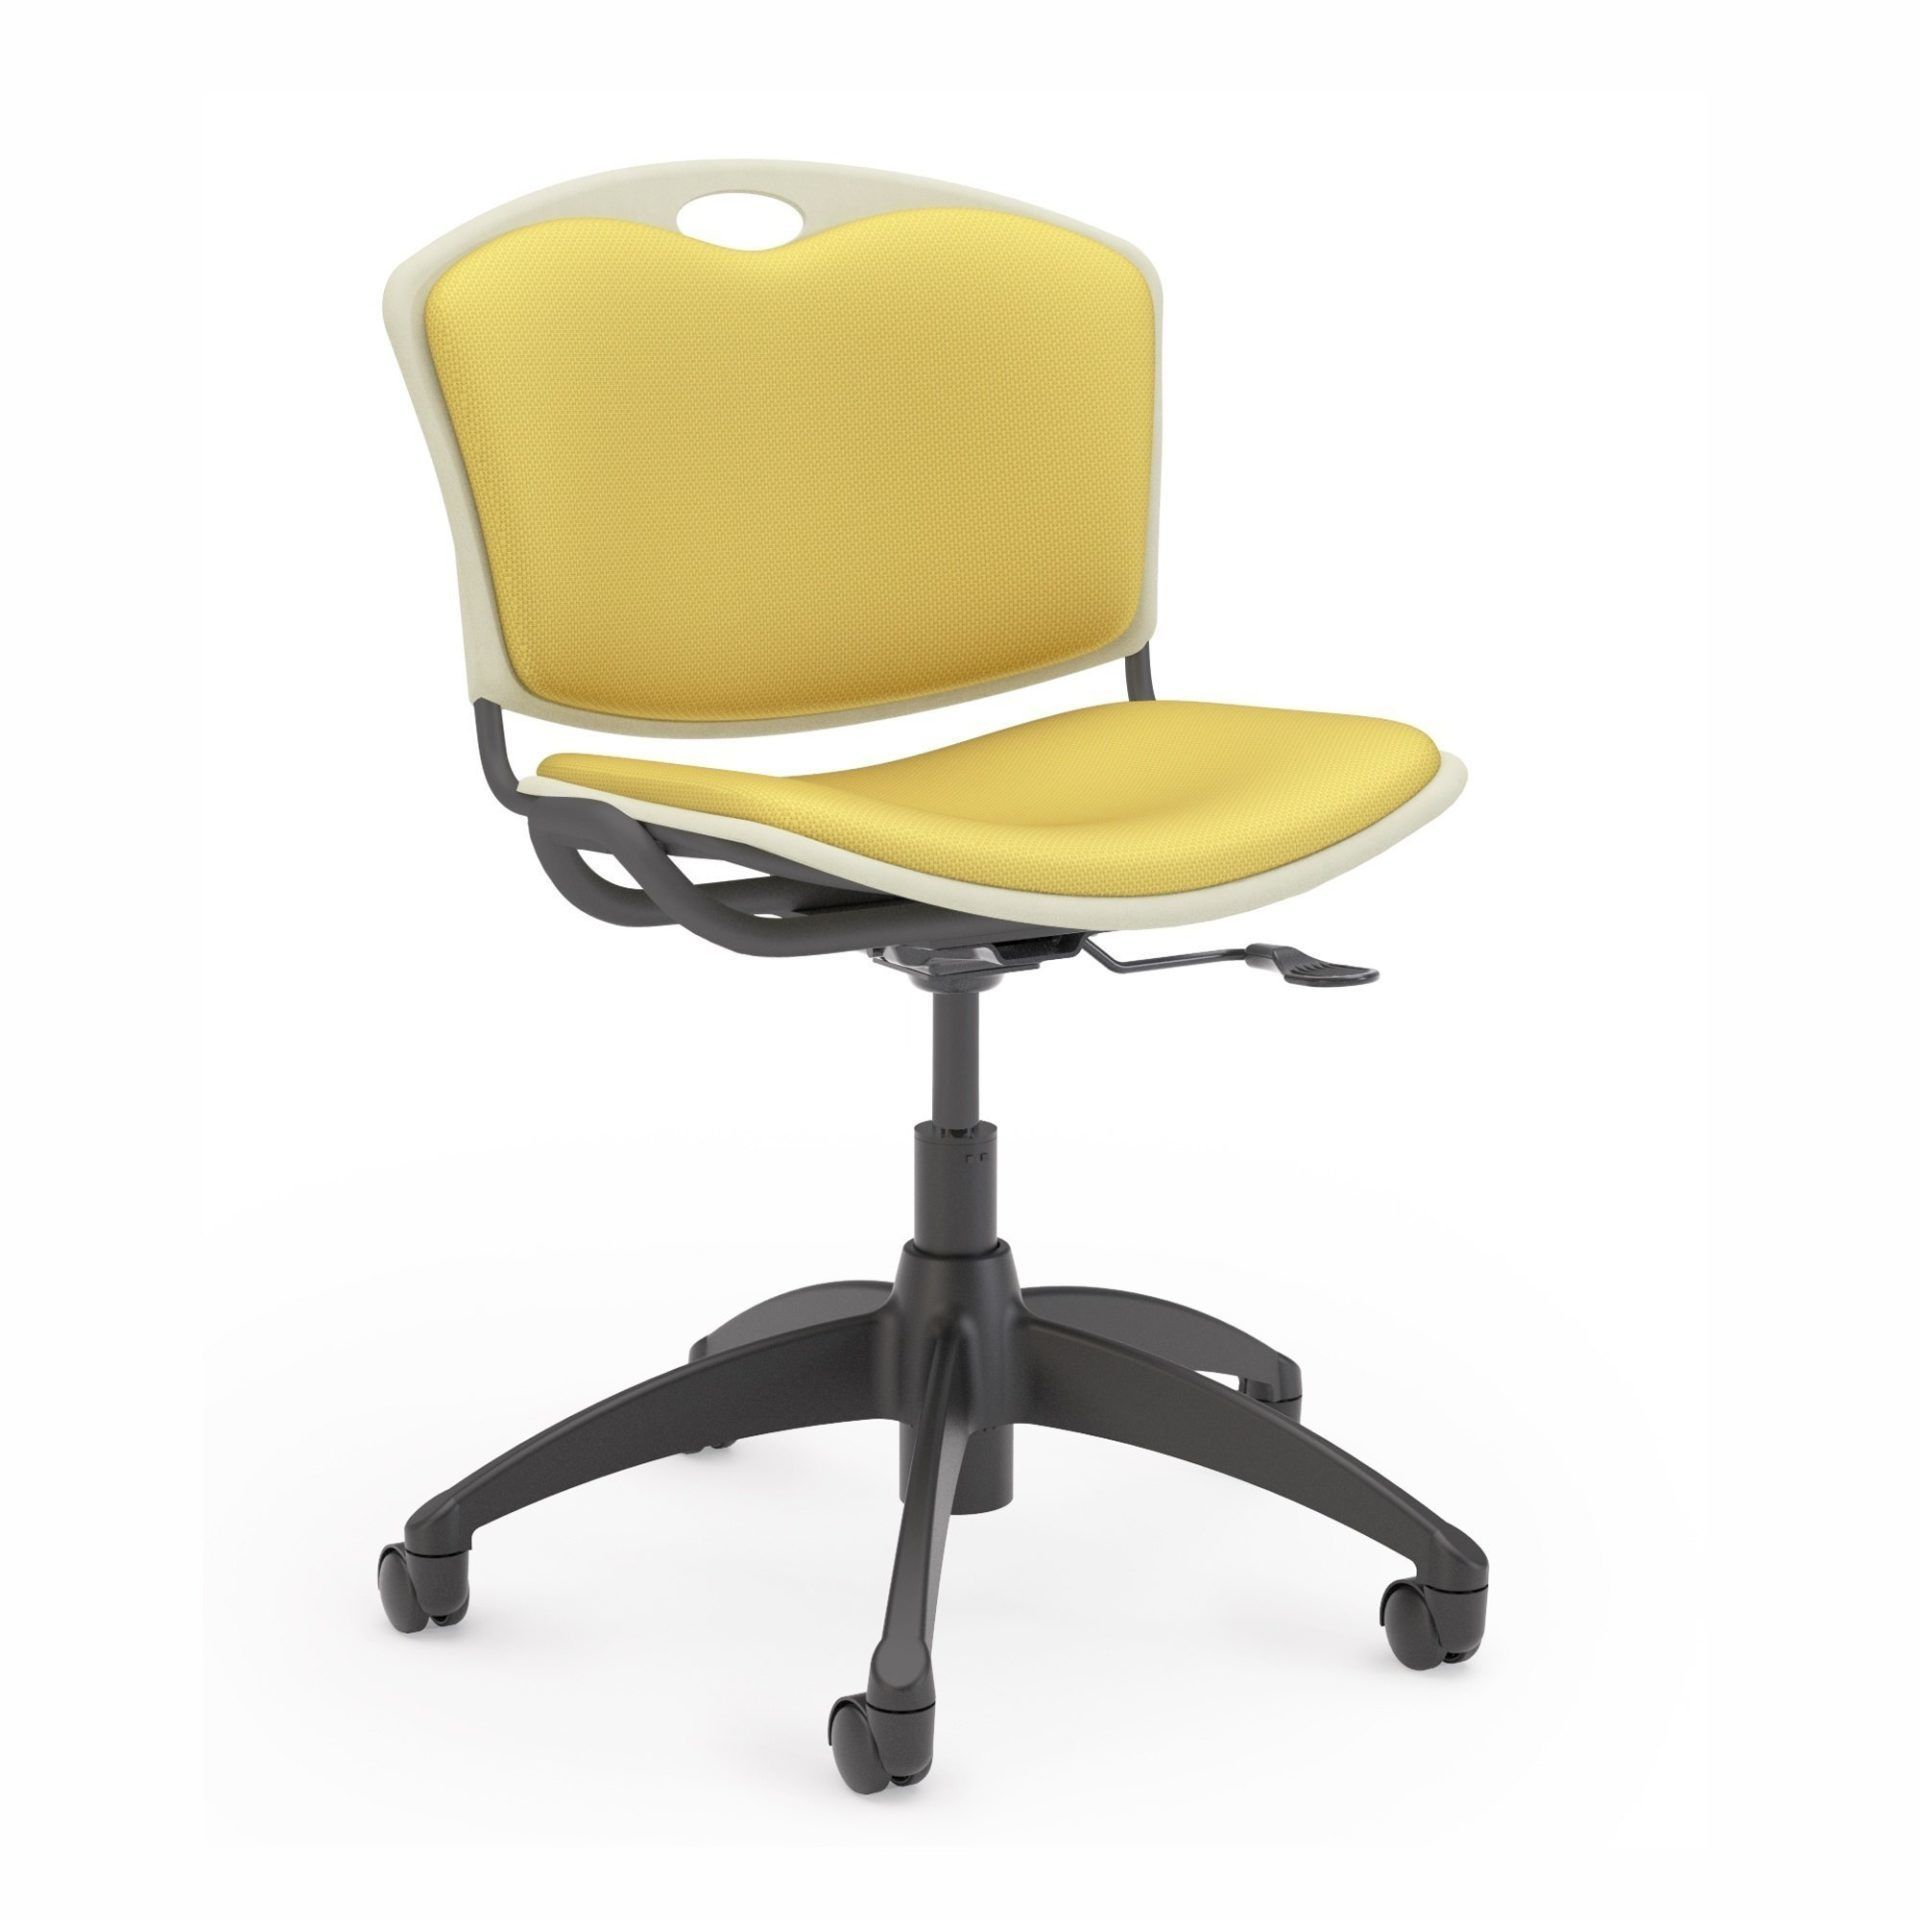 SitOnIt Anytime Light Task Chair